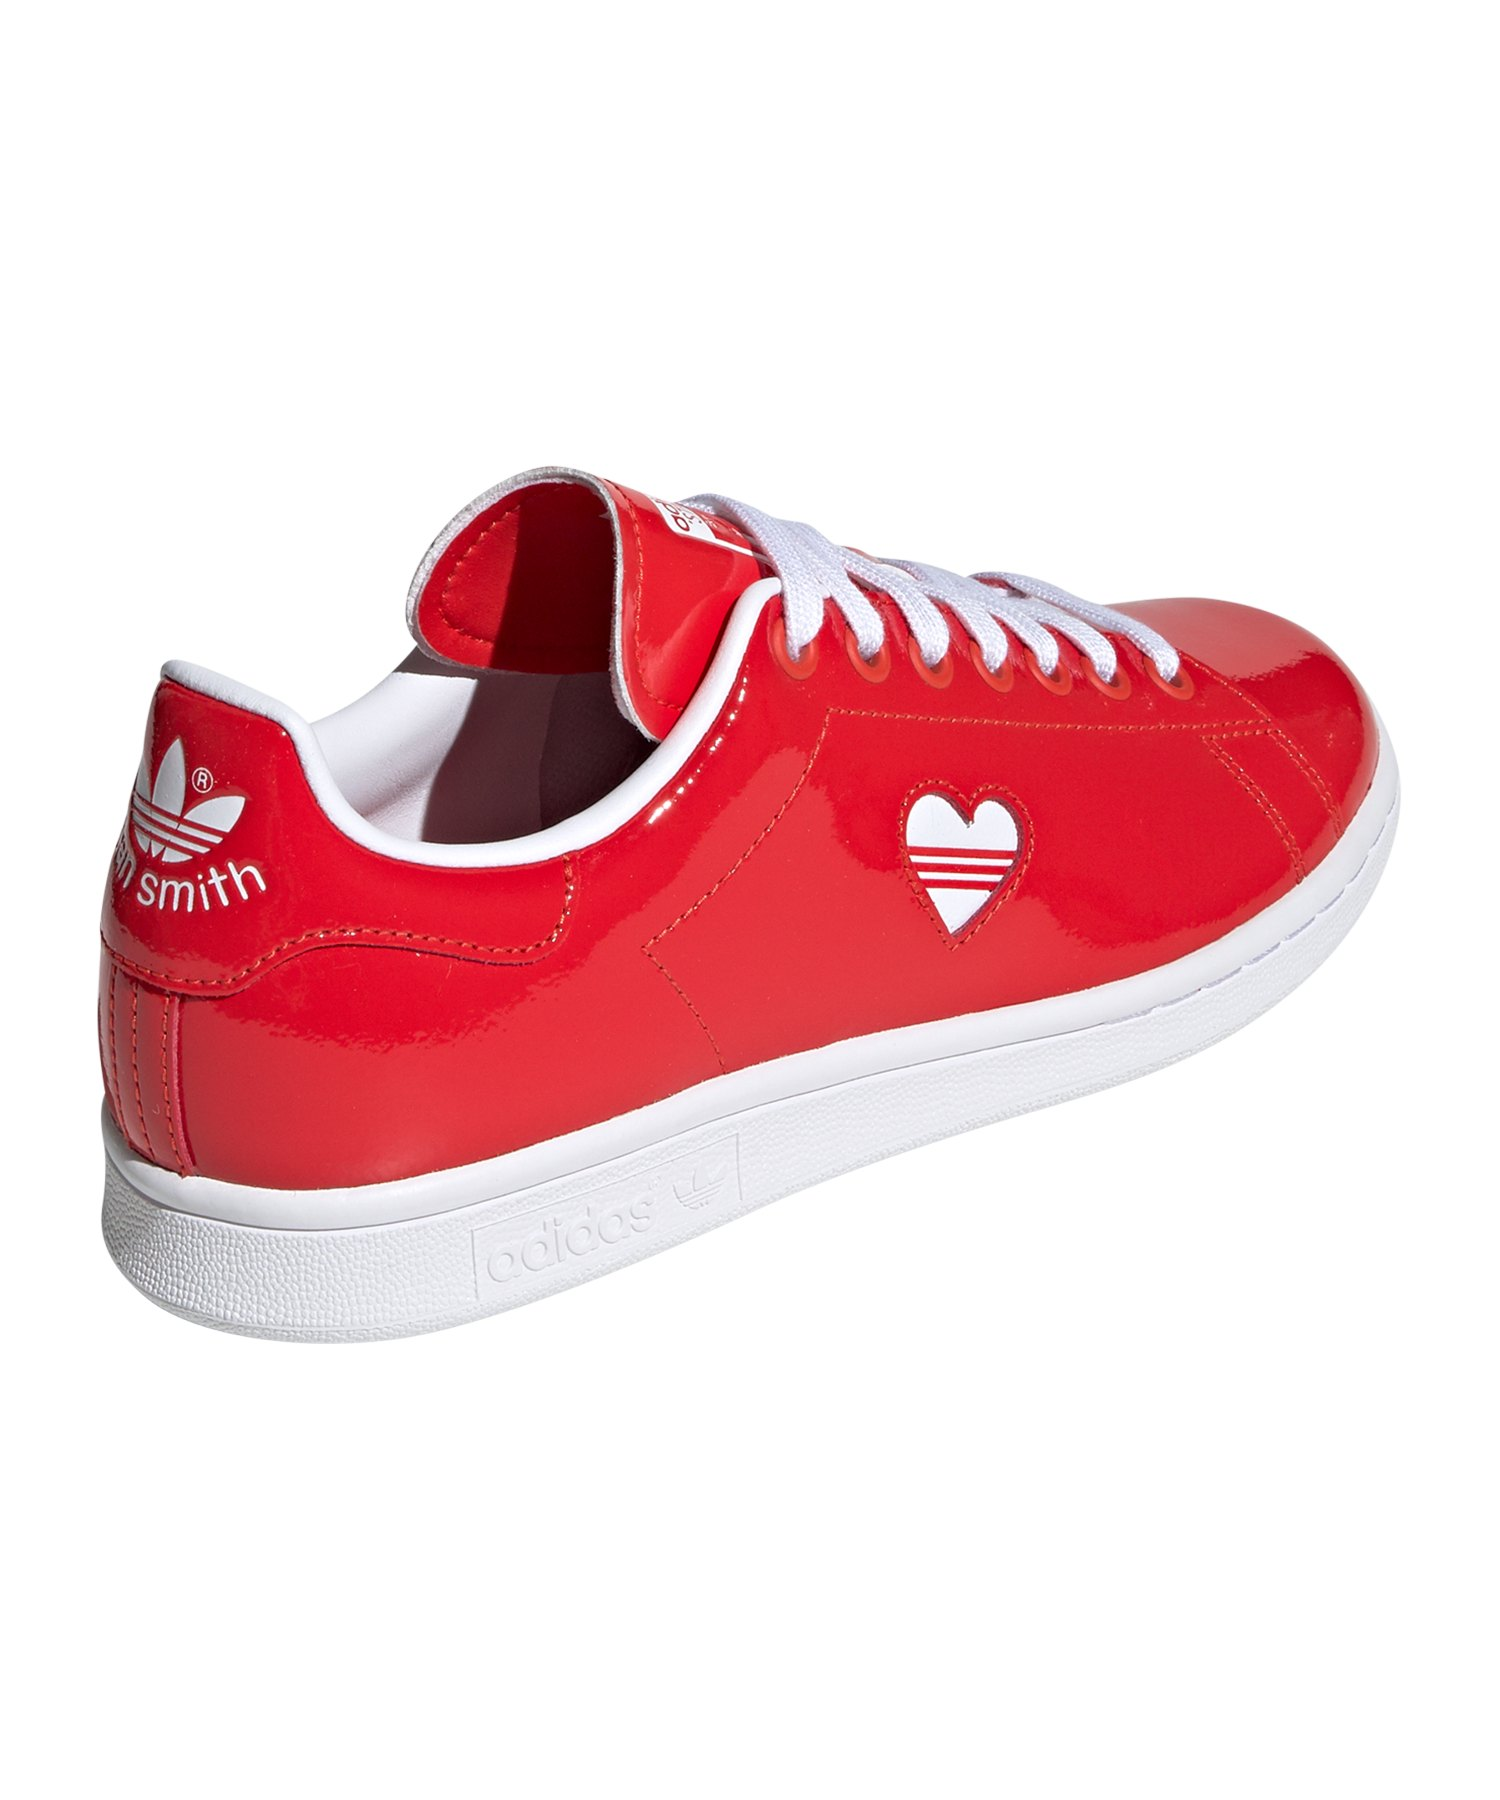 adidas Originals Stan Smith Sneaker Damen Rot